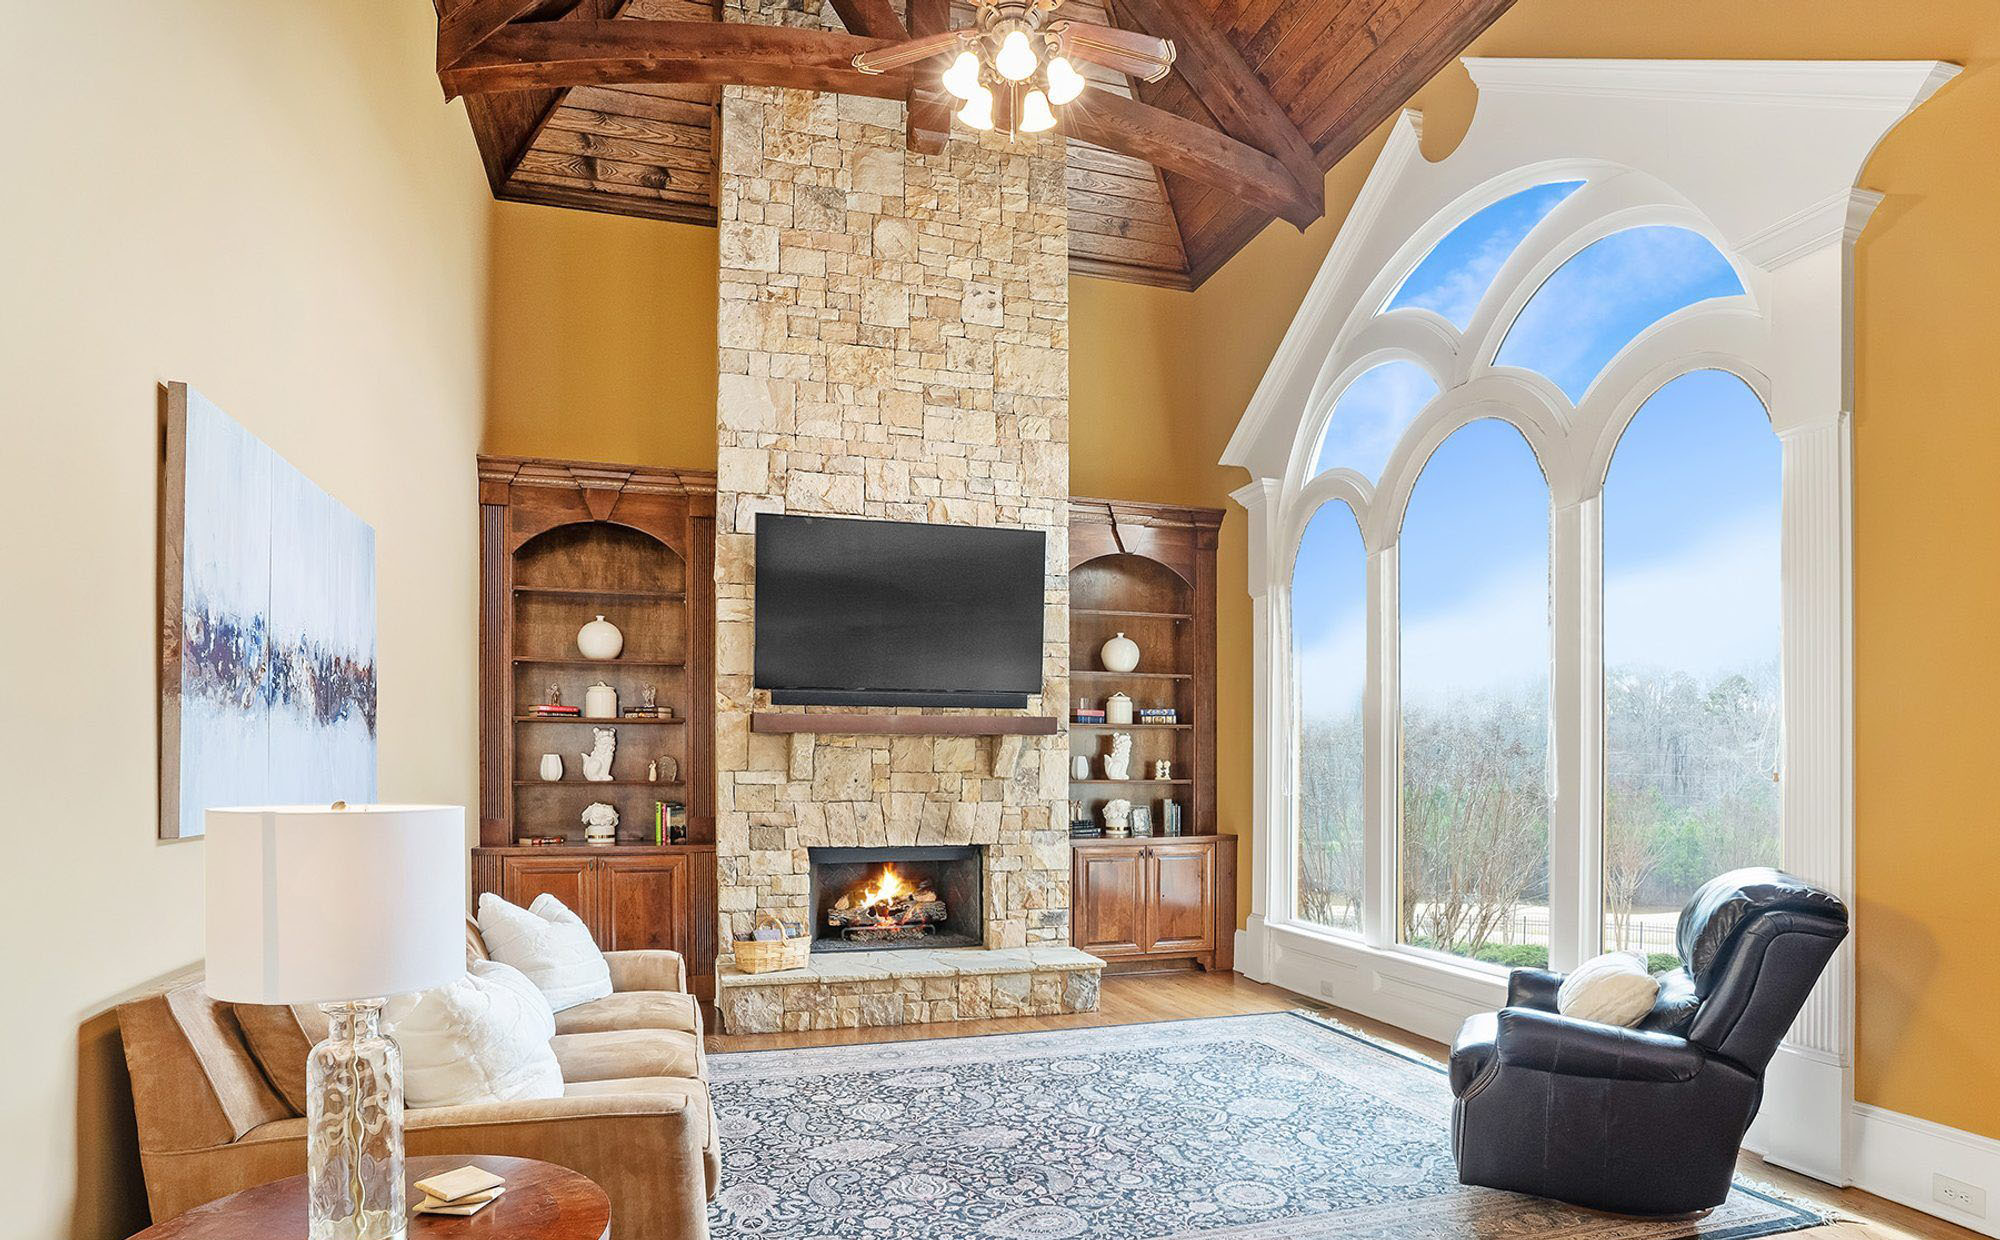 Vaulted wood ceiling with a rustic design. Exposed wood beams and ceiling.